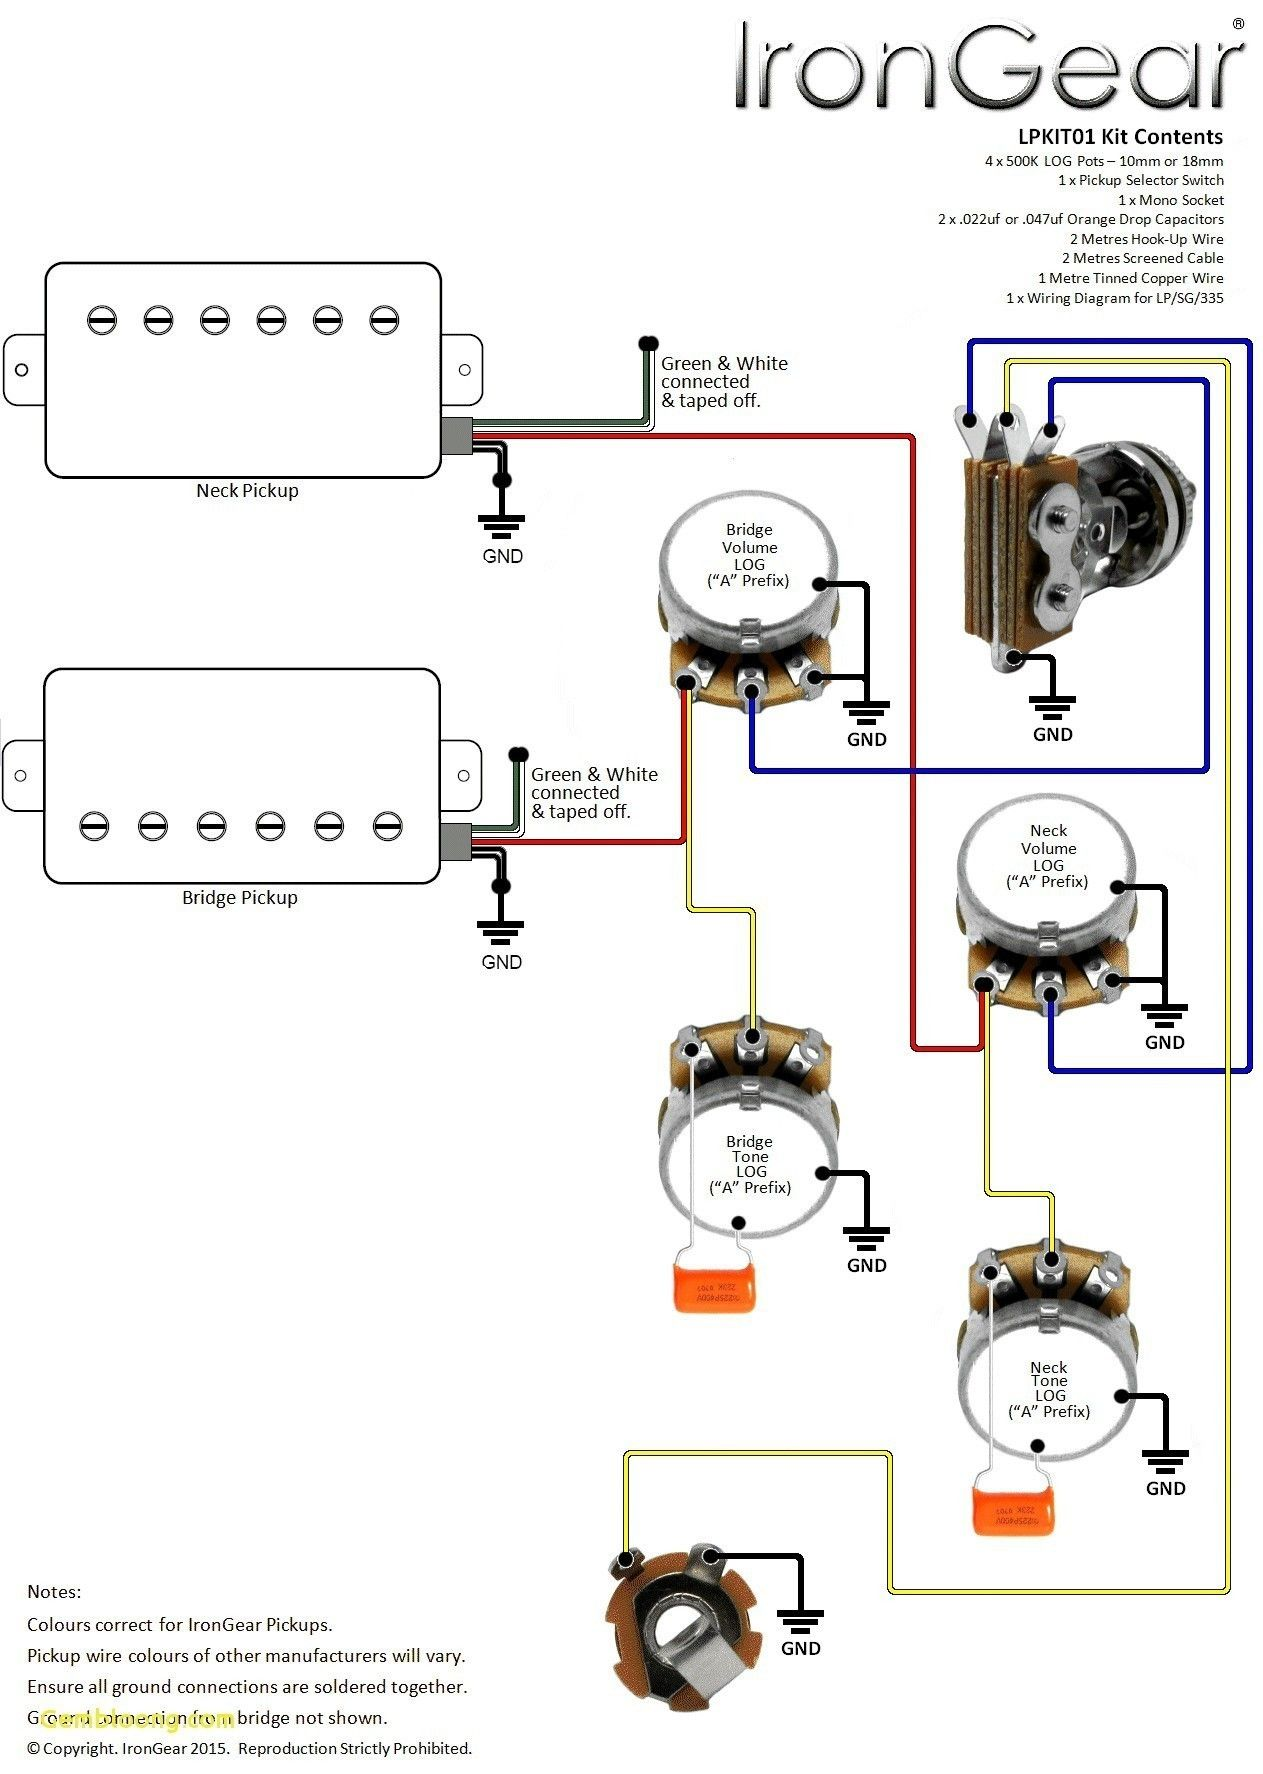 unique gibson sg faded wiring diagram diagram diagramsample diagramtemplate wiringdiagram diagramchart worksheet worksheettemplate [ 1263 x 1774 Pixel ]